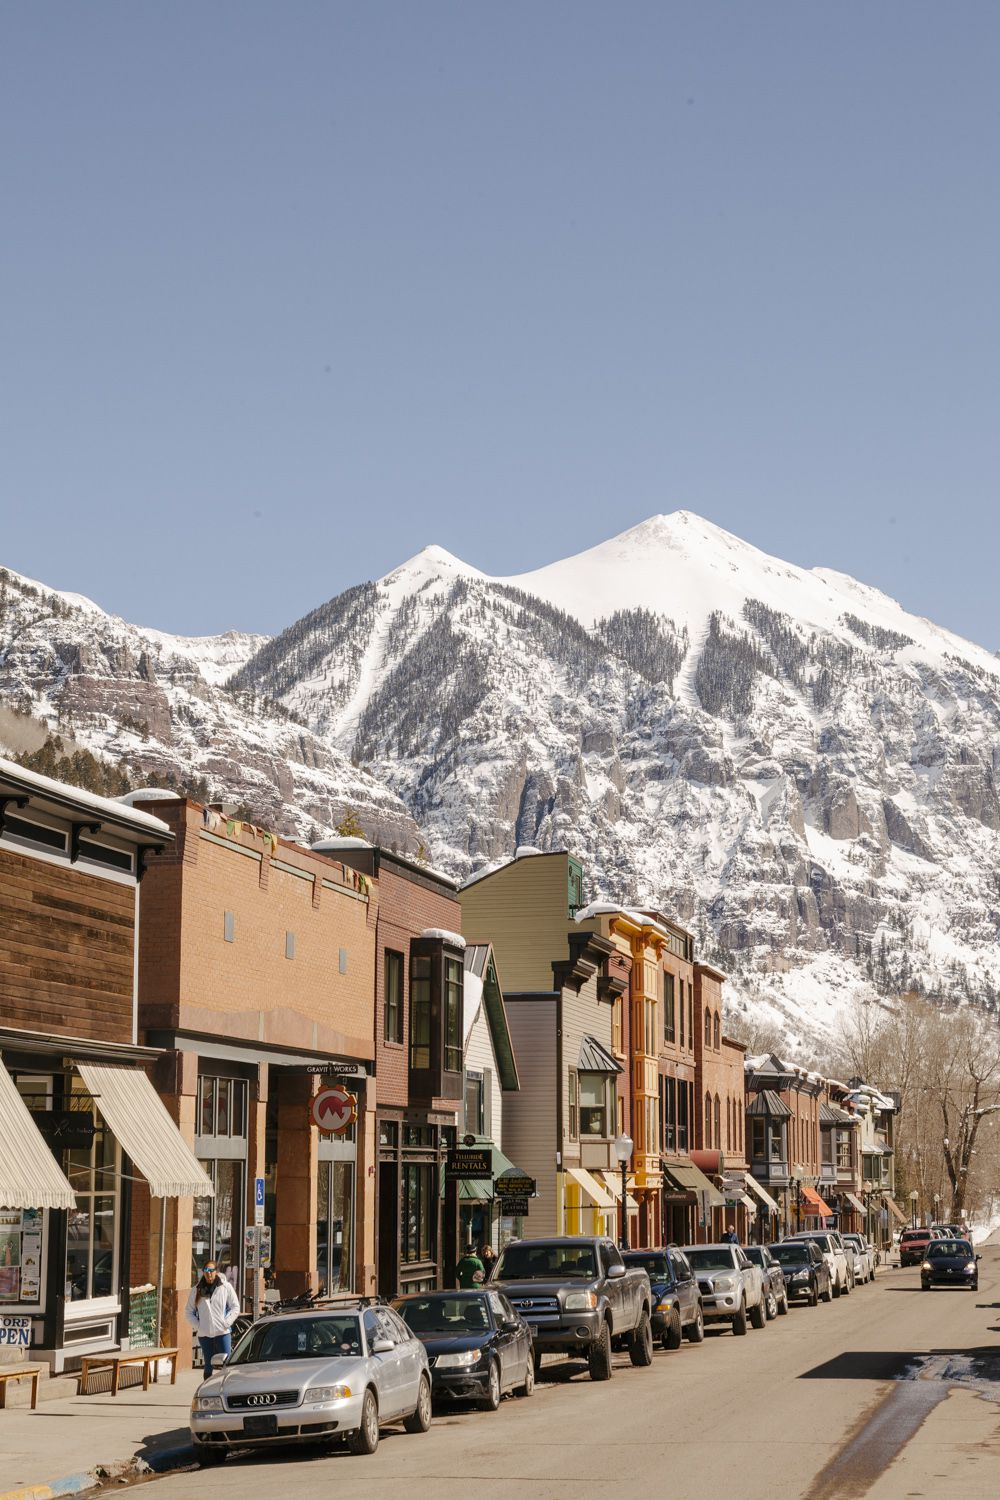 The town of Telluride, some shops and restaurants in a number of low buildings, with the mountain behind.